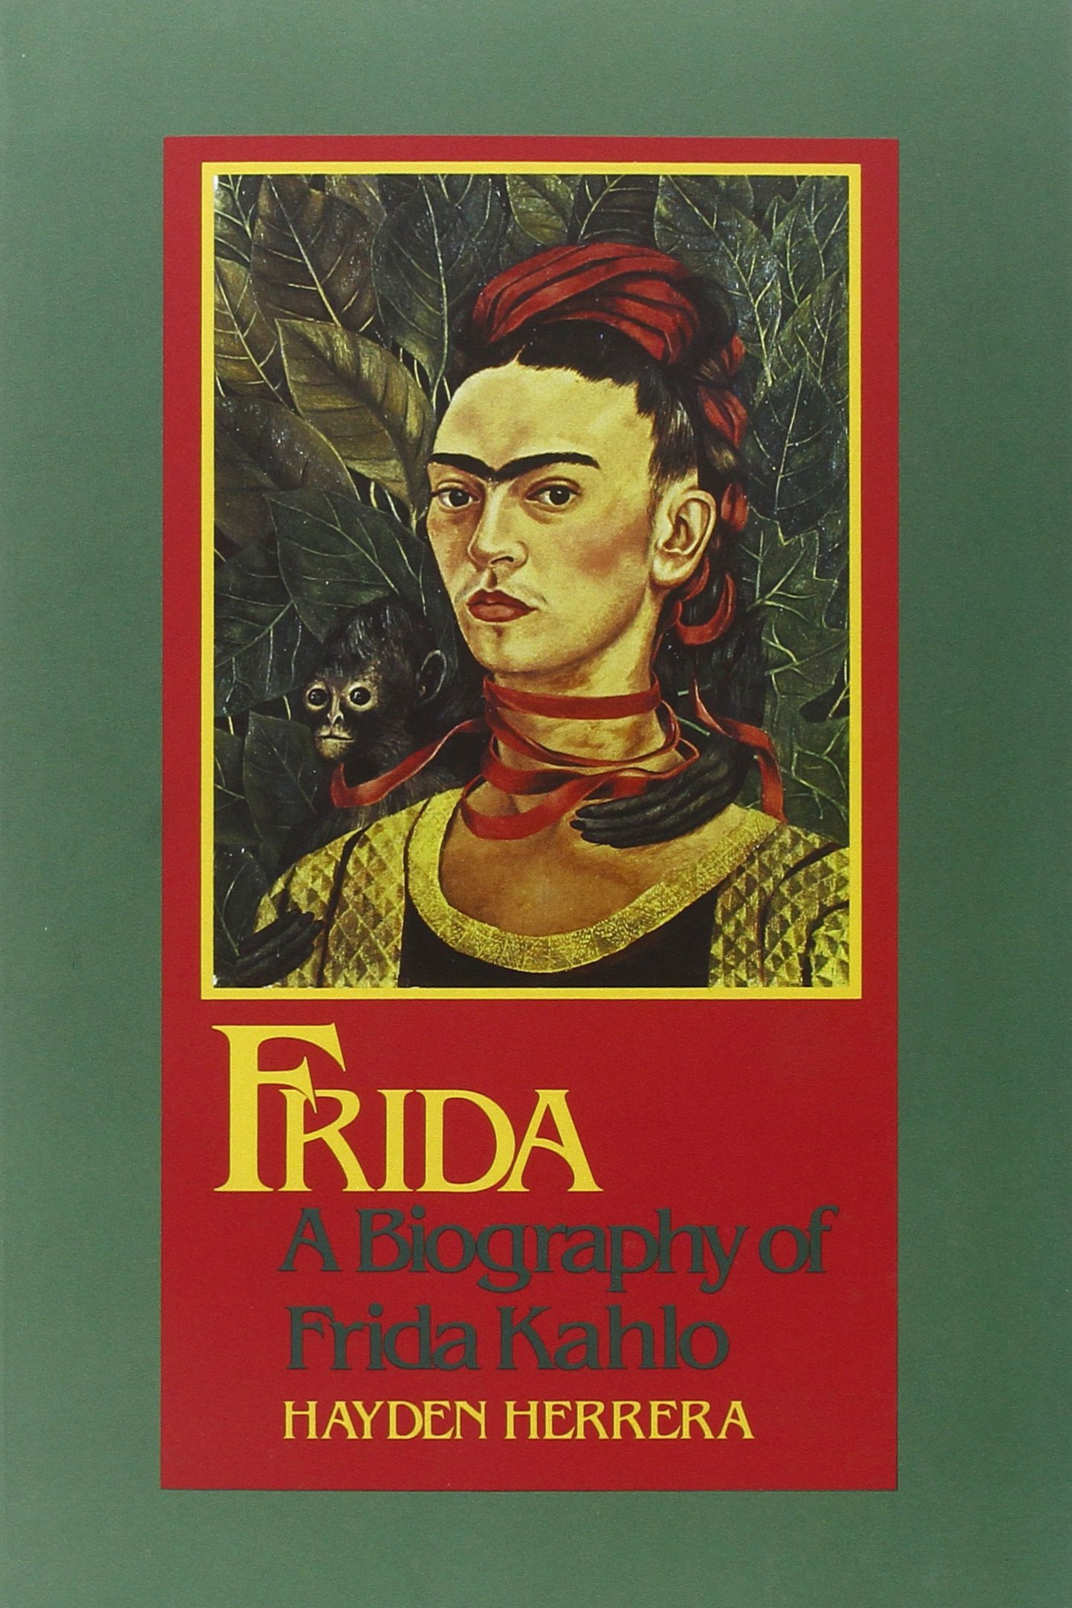 <em>Frida: A Biography of Frida Kahlo</em> by Hayden Herrera